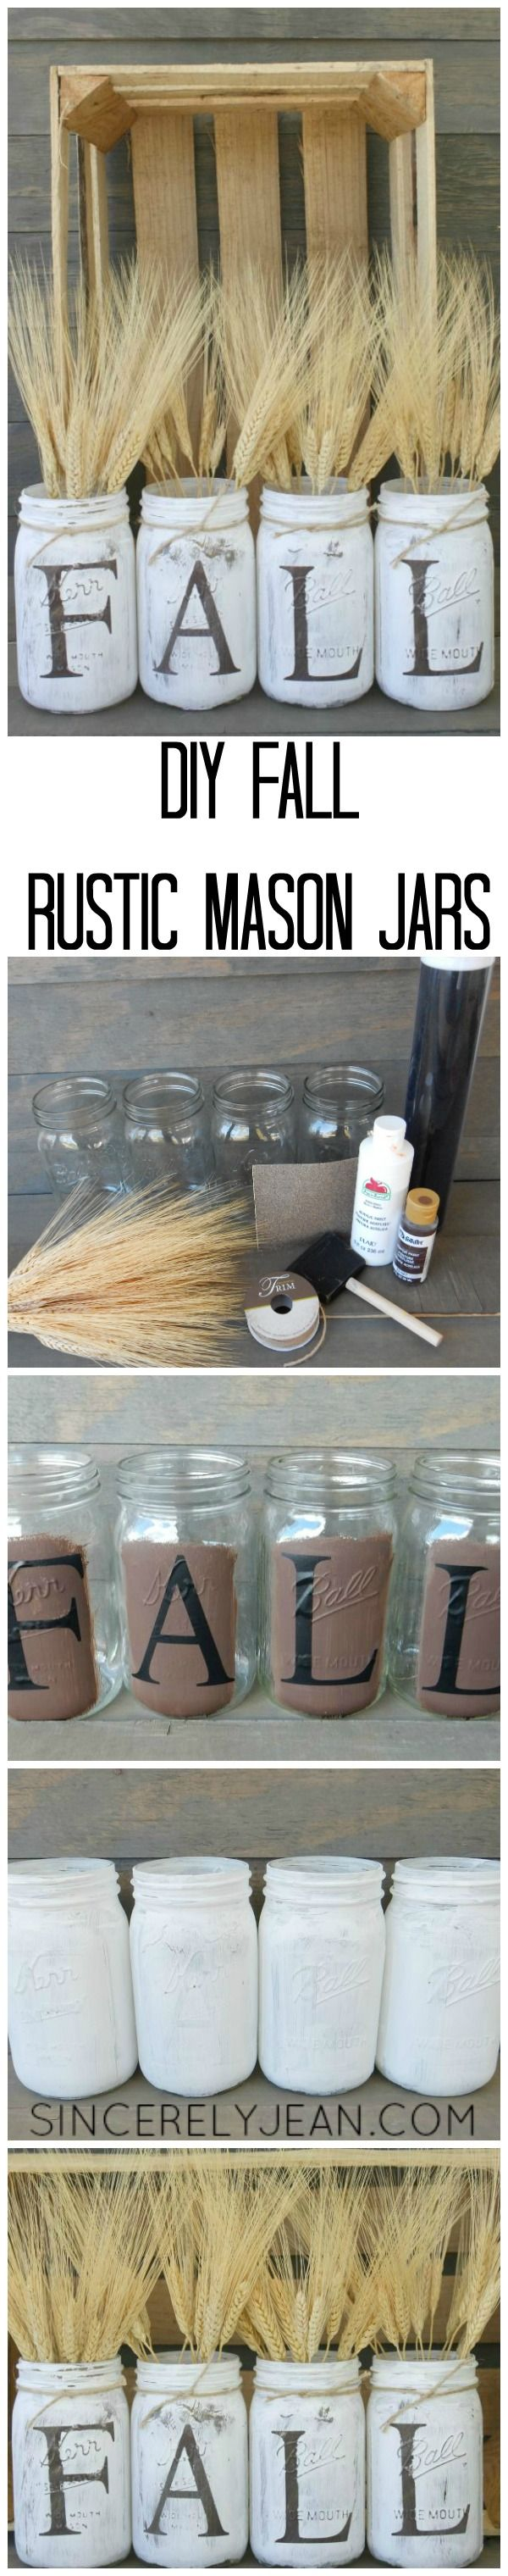 These fall rustic mason jars are so cute and easy to make! They will be a perfect addition to your fall decor!